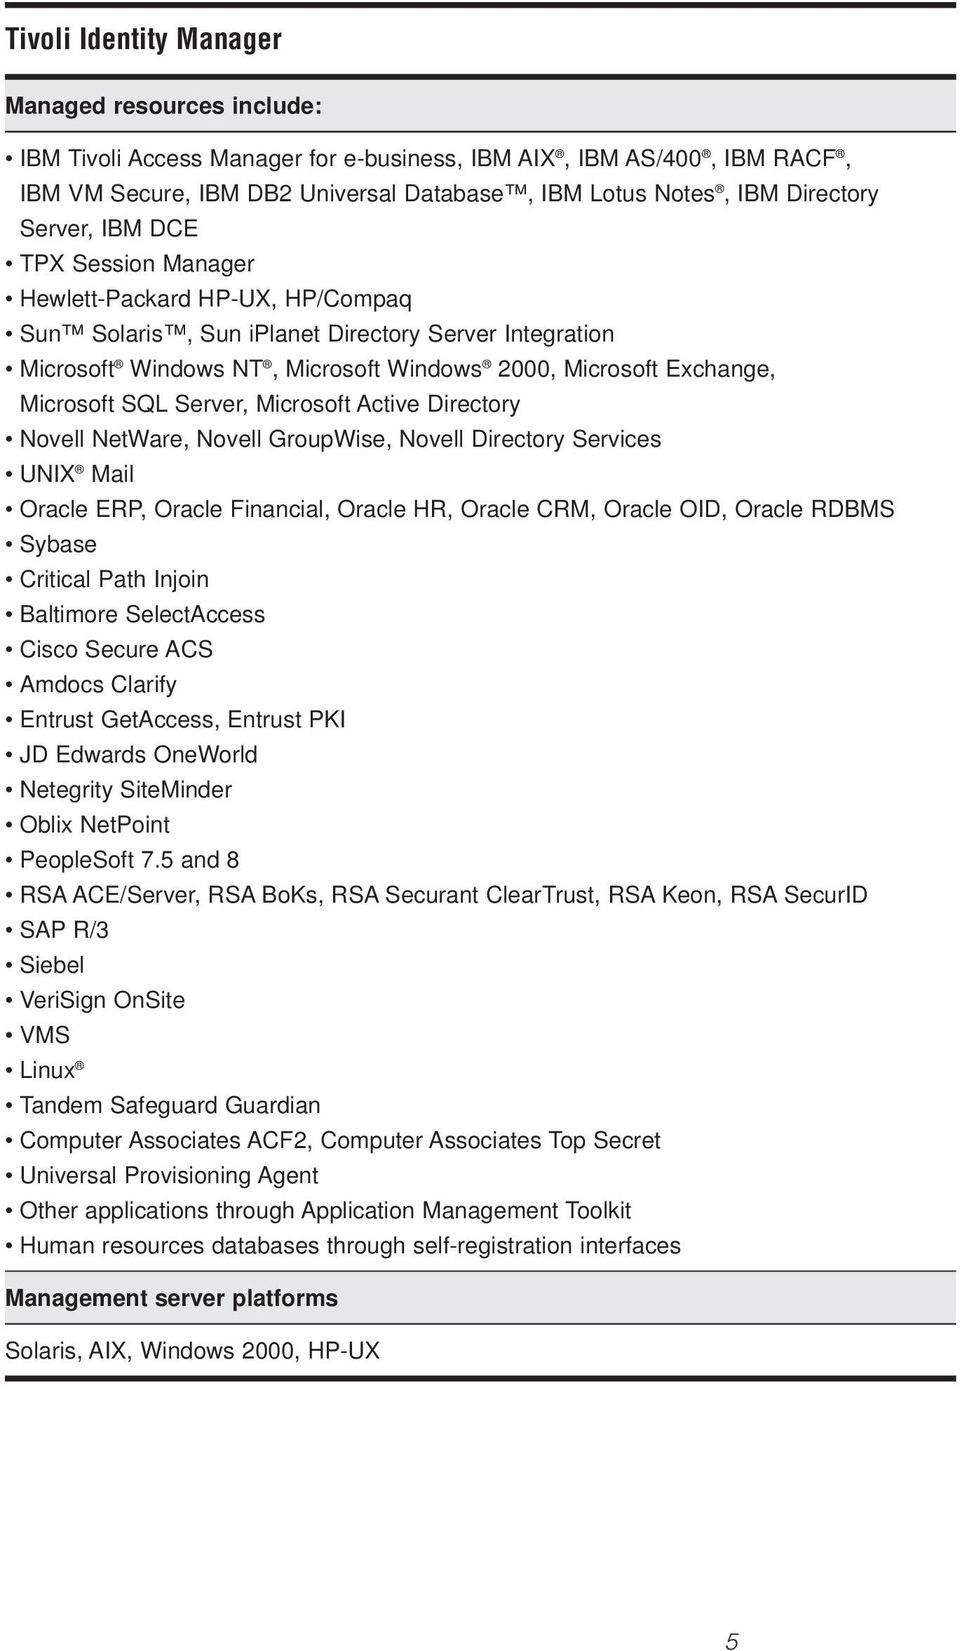 SQL Server, Microsoft Active Directory Novell NetWare, Novell GroupWise, Novell Directory Services UNIX Mail Oracle ERP, Oracle Financial, Oracle HR, Oracle CRM, Oracle OID, Oracle RDBMS Sybase